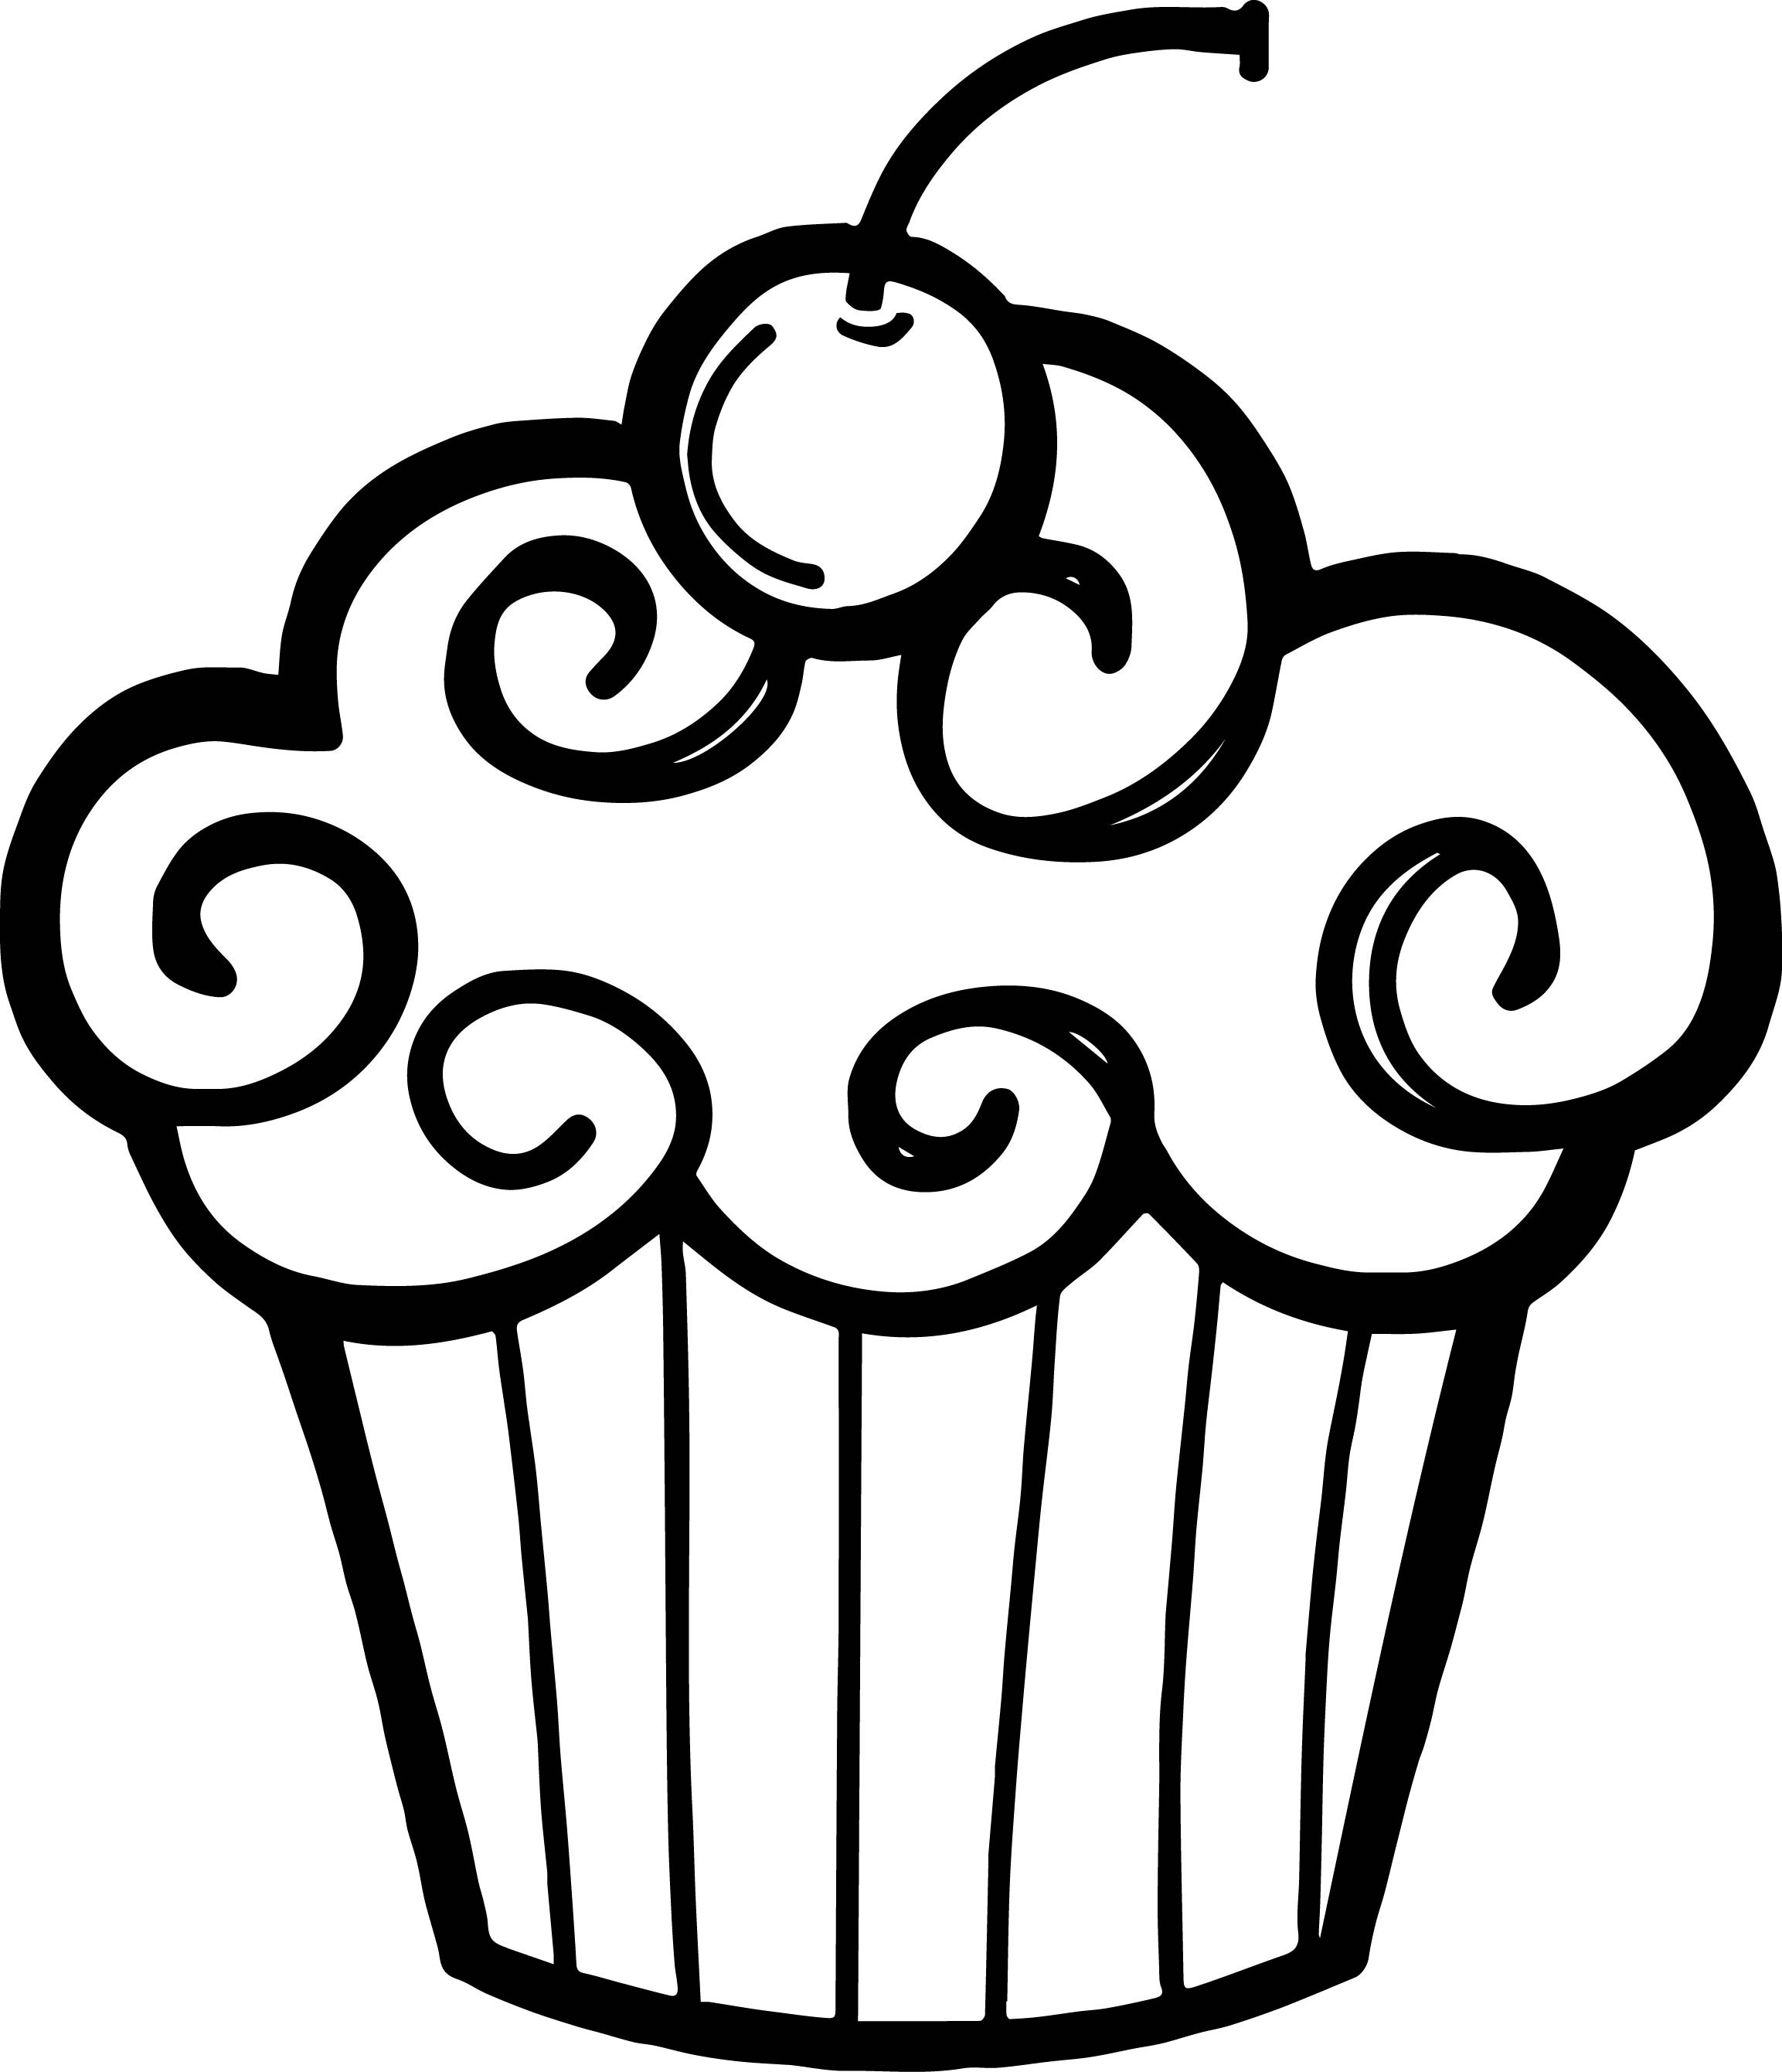 2306x2681 Slice Cake Drawing At Getdrawings Com Free For Personal Use